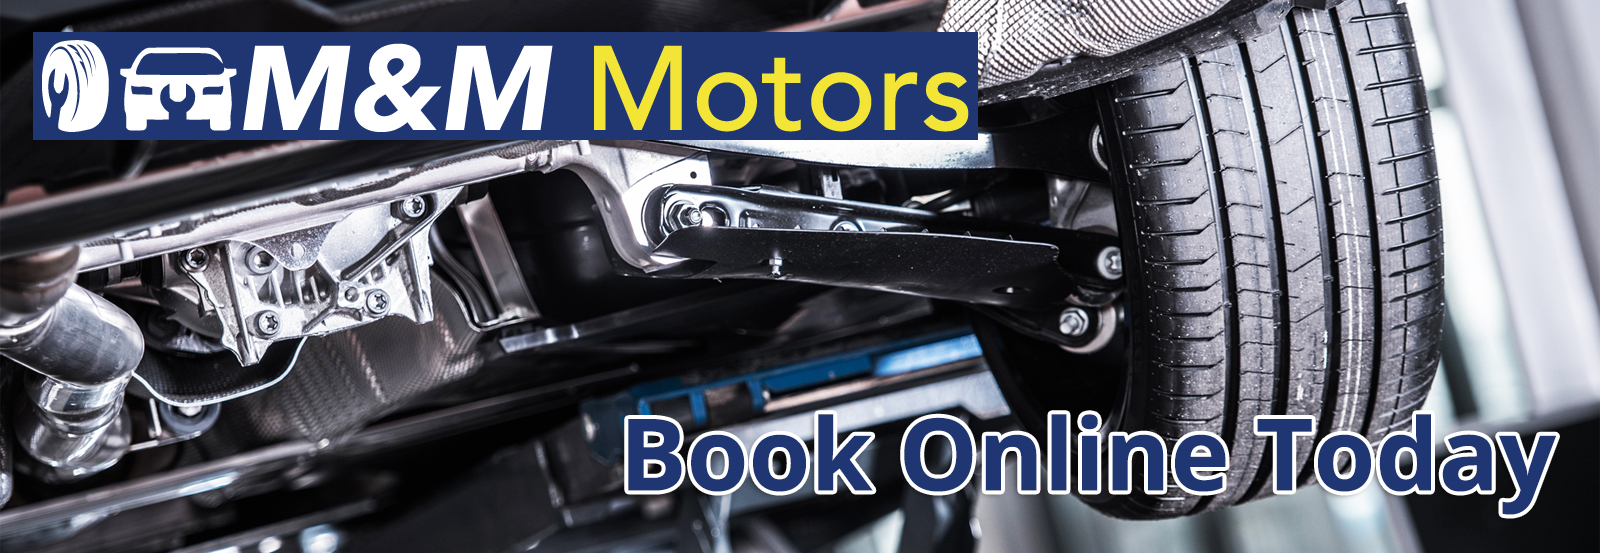 Book online with M & M Motors Ltd - MOT, Tyres, Diagnostics & Servicing near Whitby